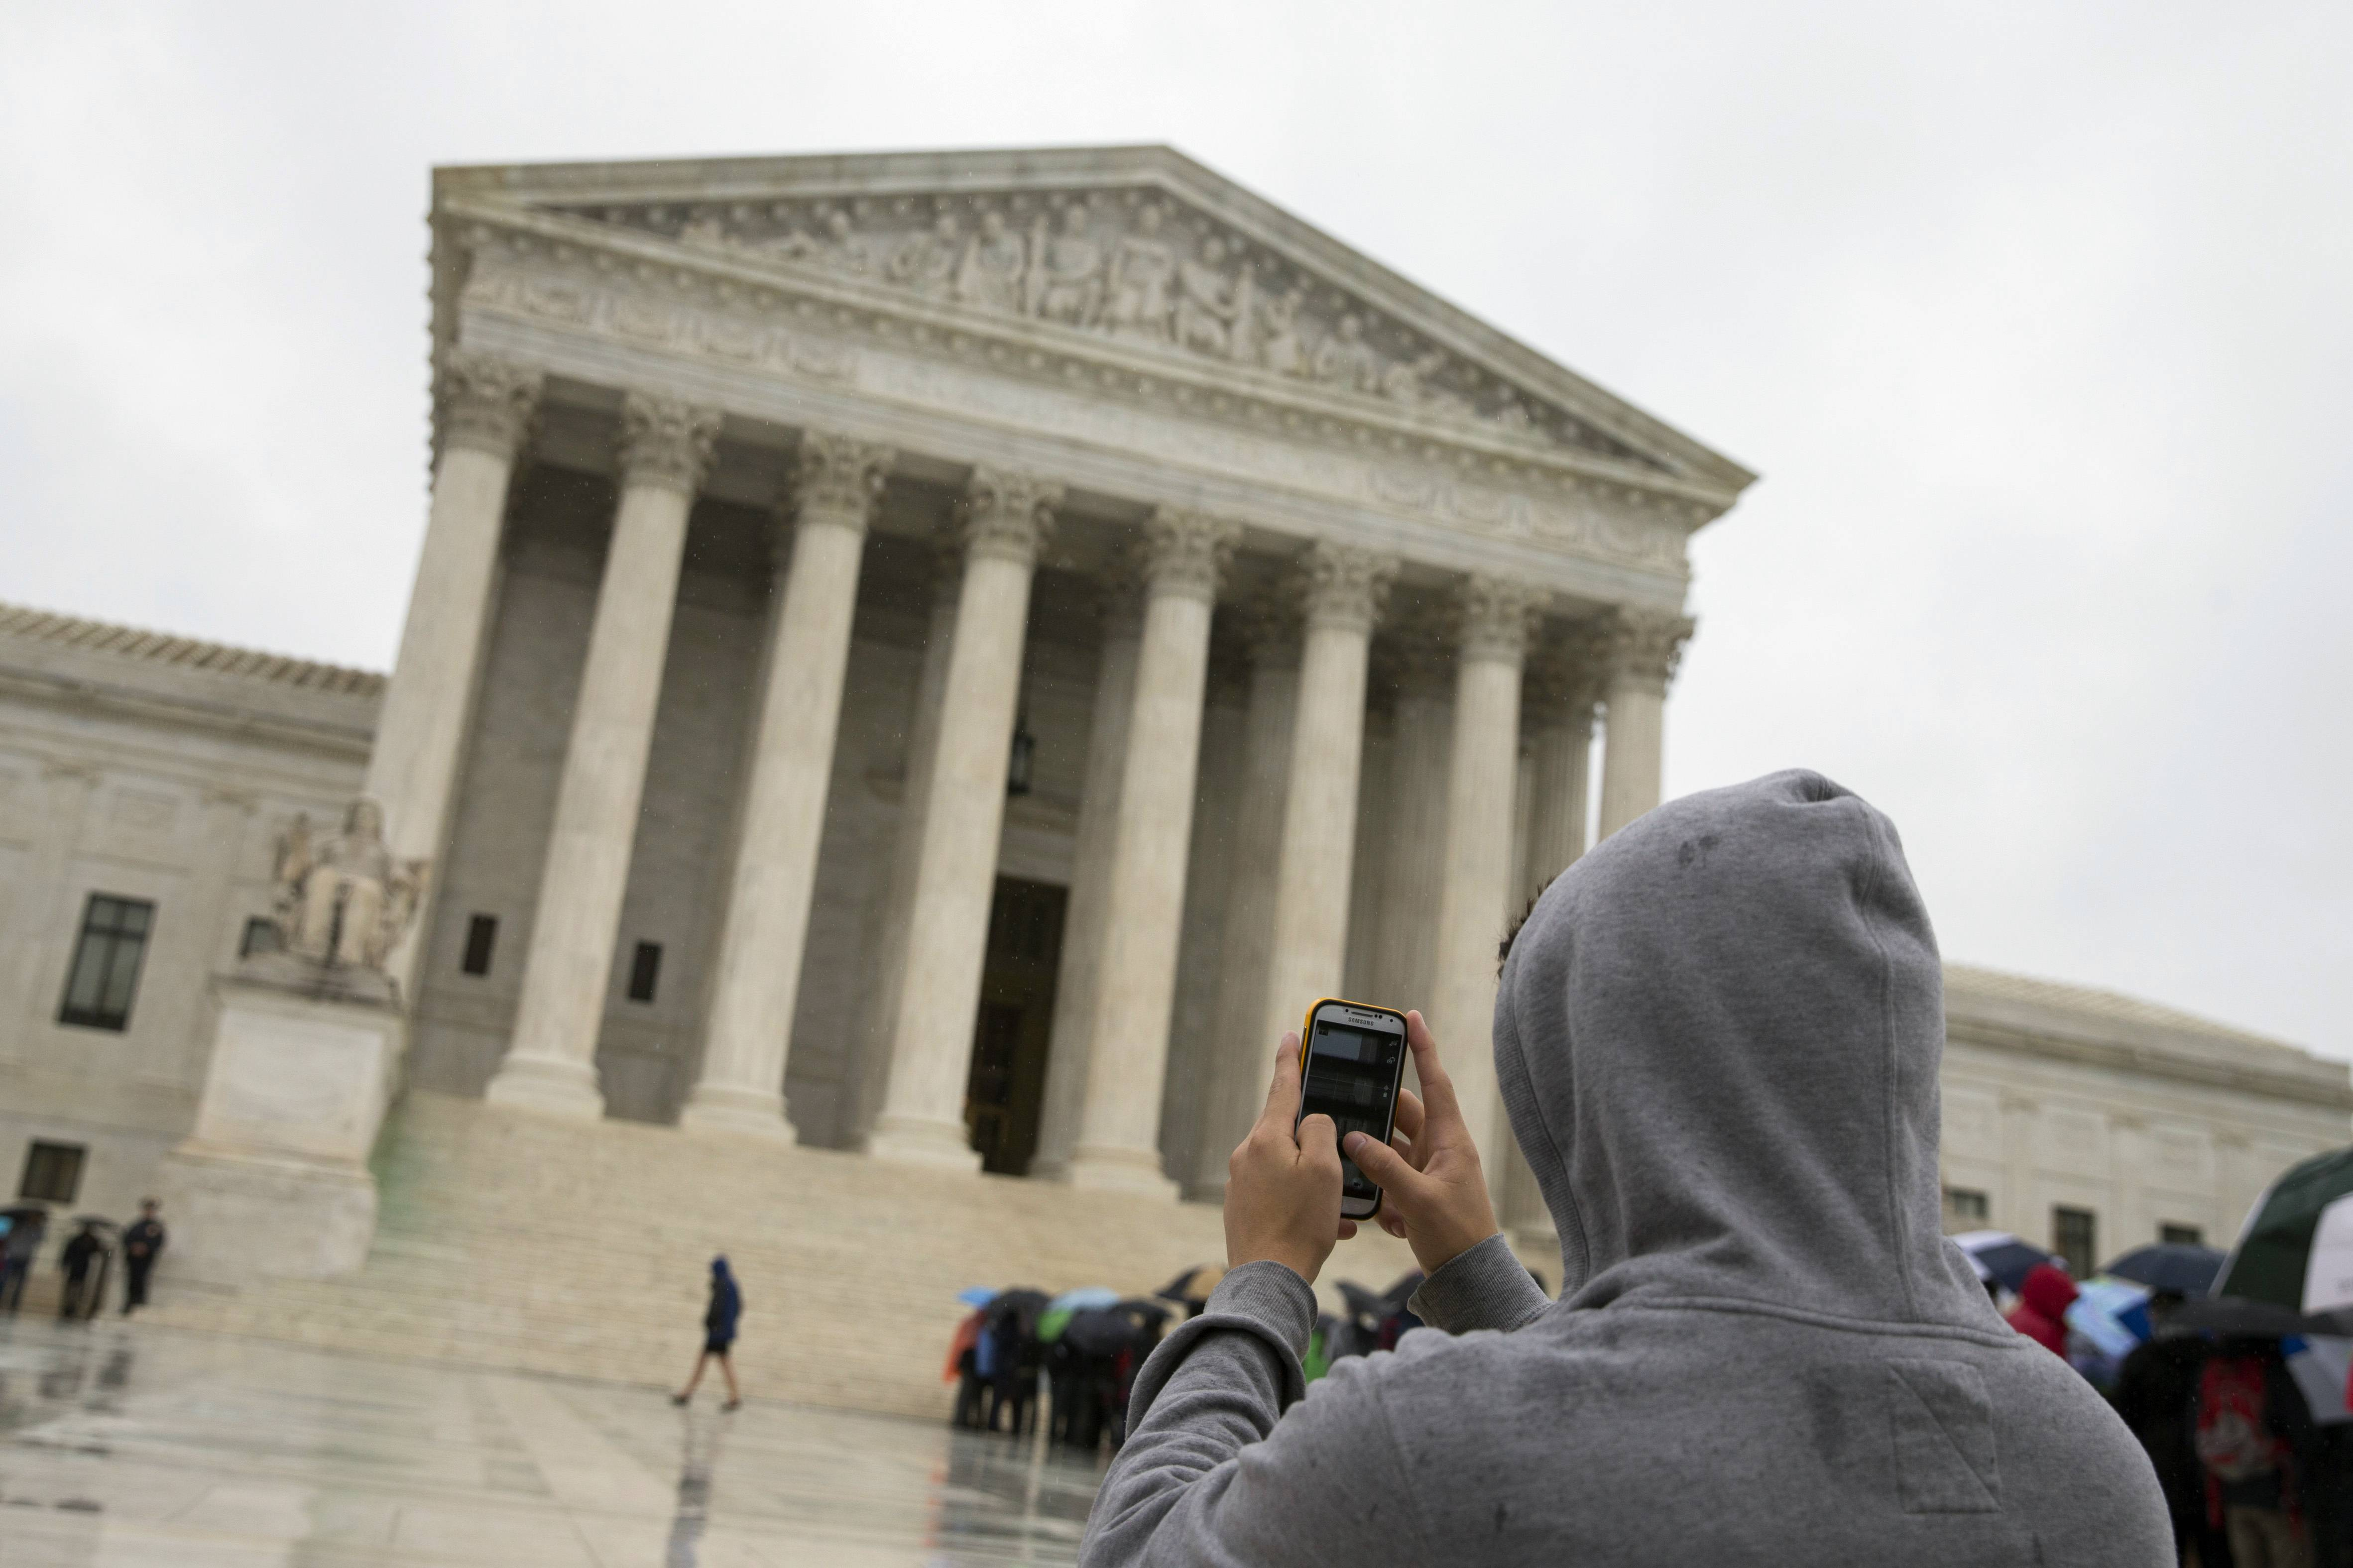 Police may not generally search the cellphones of people they arrest without first getting search warrants, the Supreme Court ruled Wednesday. The court said cellphones are powerful devices unlike anything else police may find on someone they arrest.